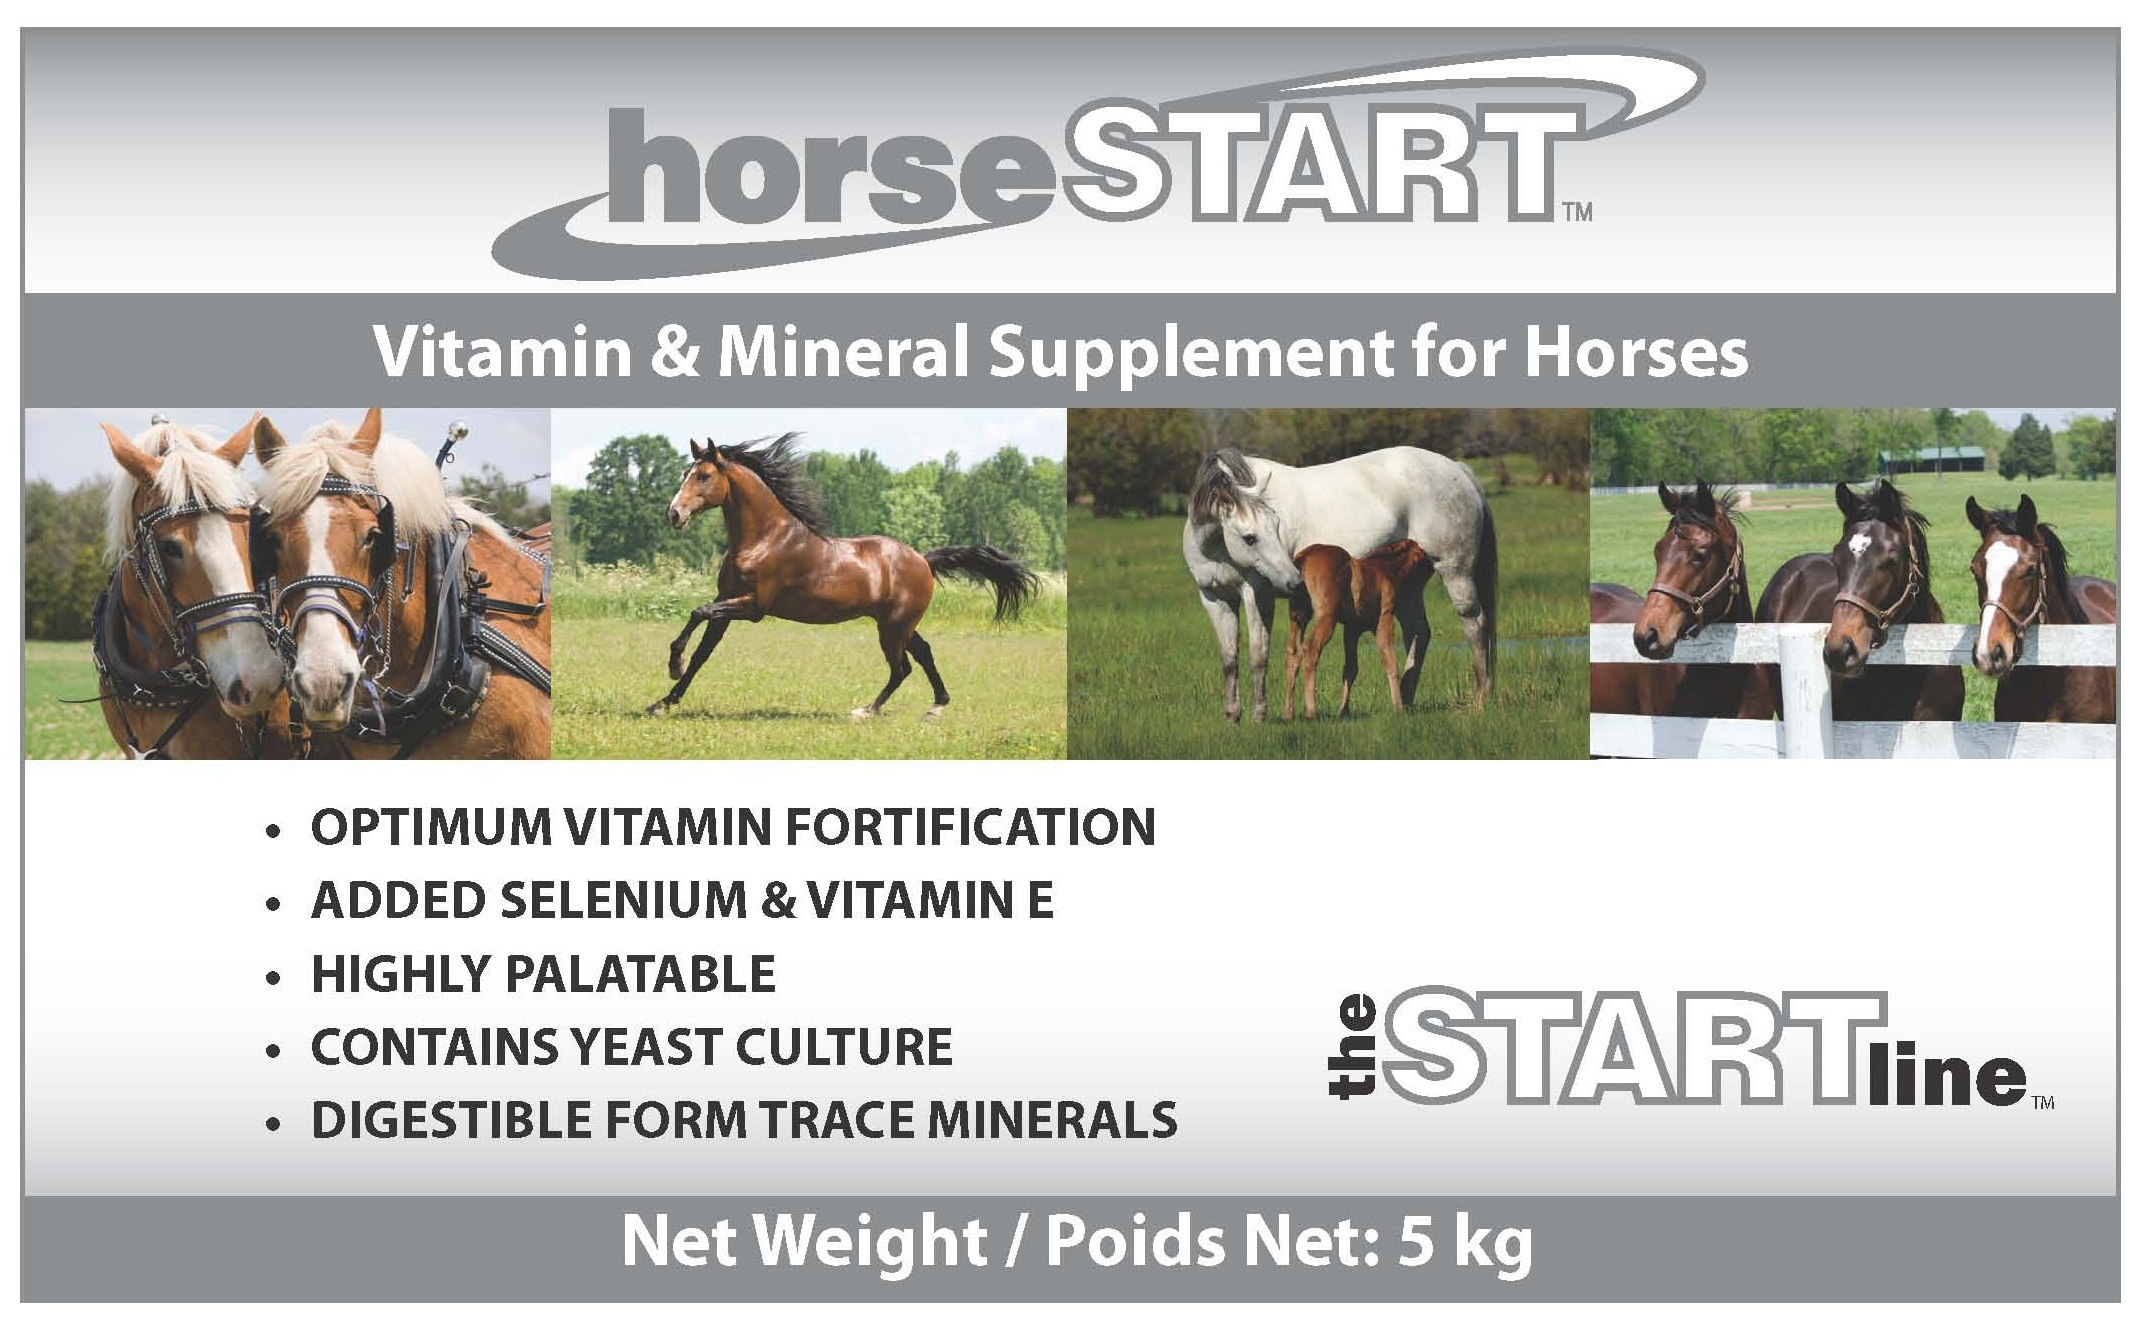 horseSTART Vitamin & Mineral Premix for Horses